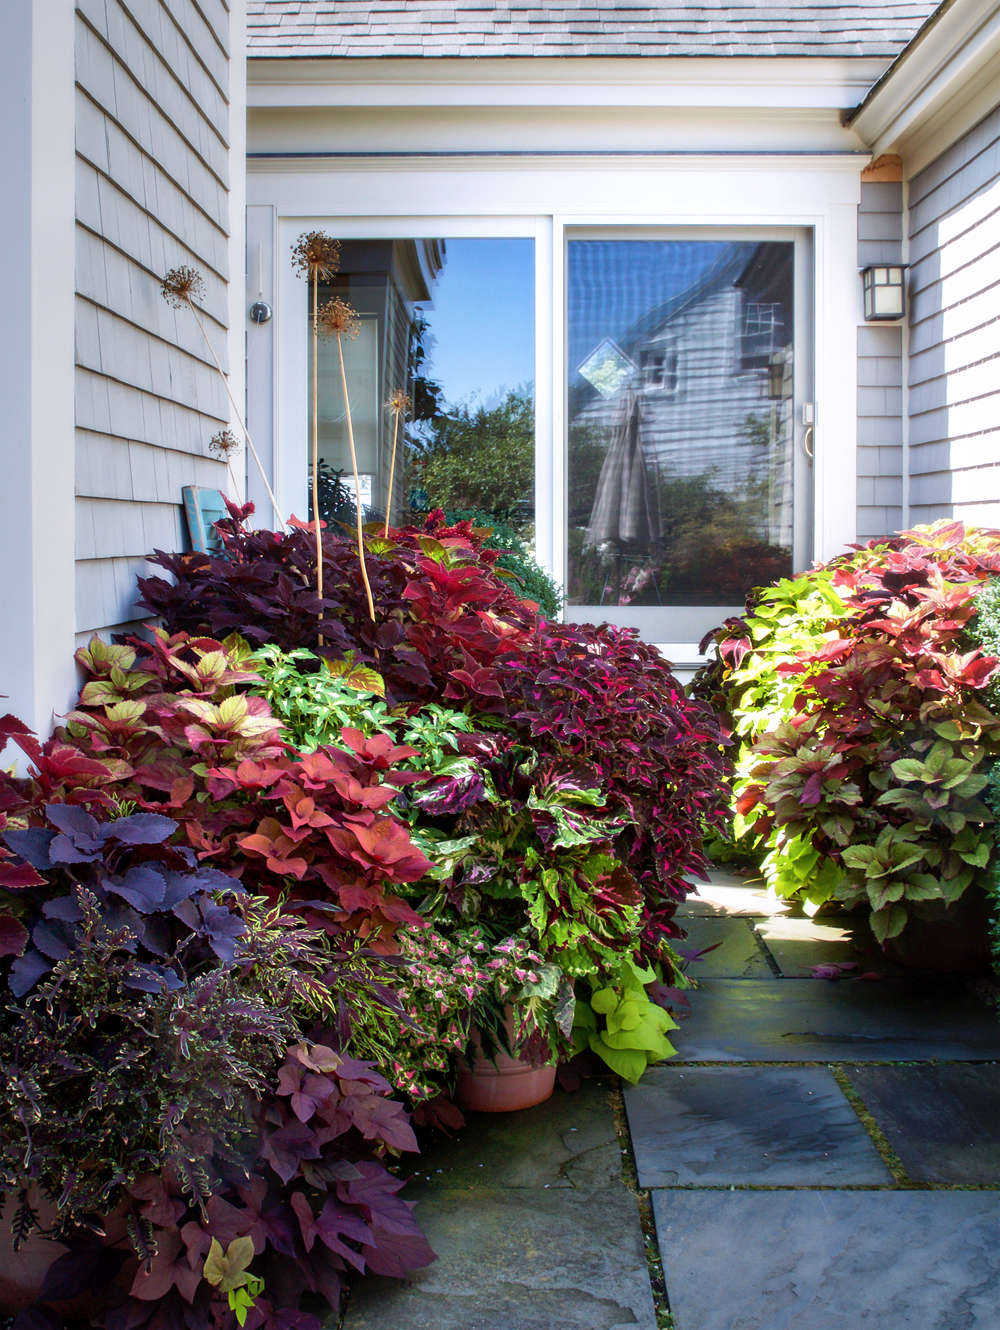 In this cool, shady courtyard of a West End home, Tim added some dramatic fire with layers of large coleus plants coupled with sweet potato vine.